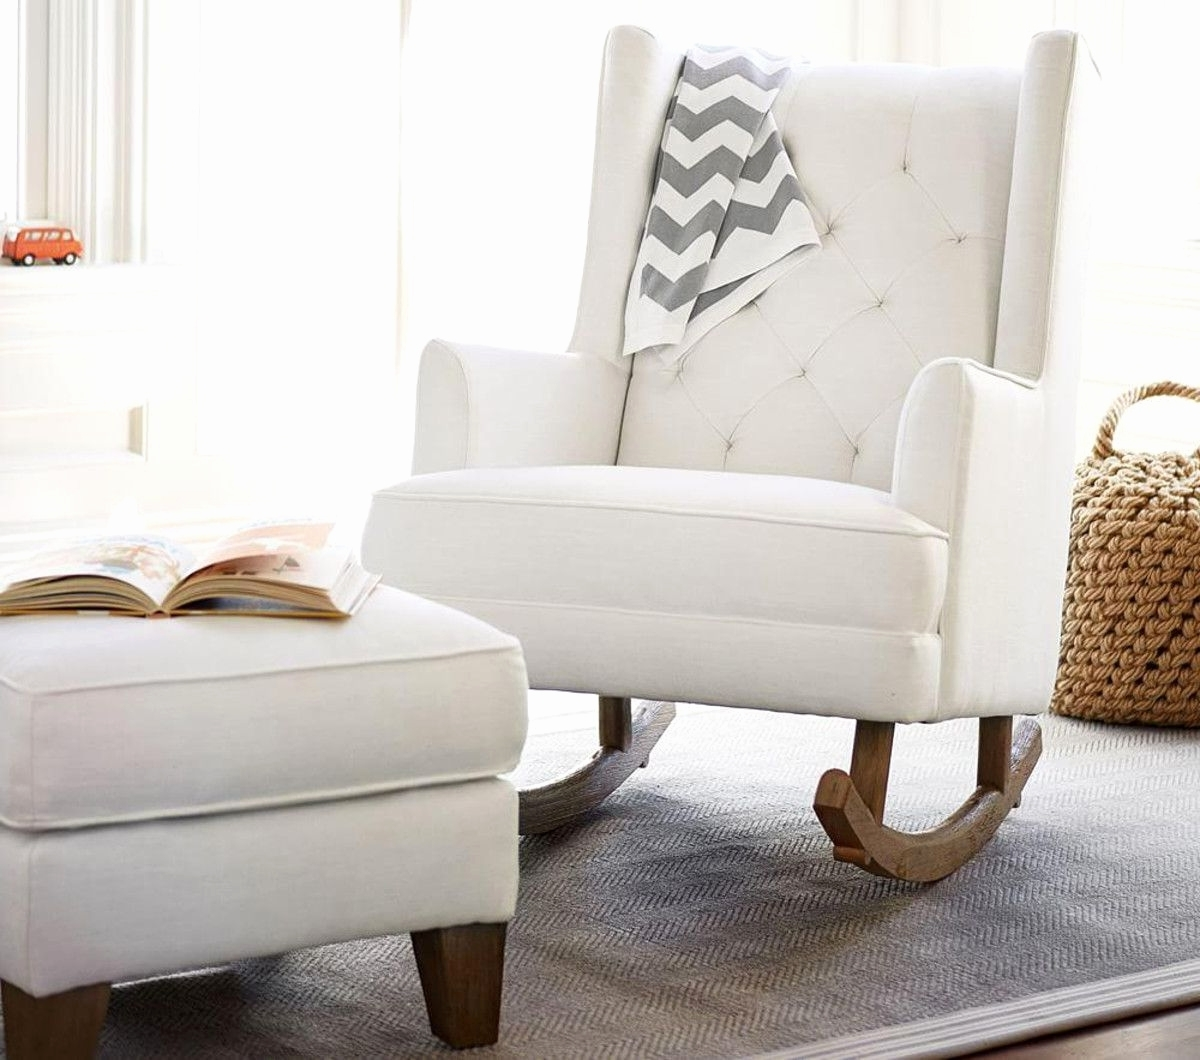 Rocking Chair Baby Nursery – Noakijewelry Regarding Widely Used Rocking Chairs For Baby Room (View 11 of 15)